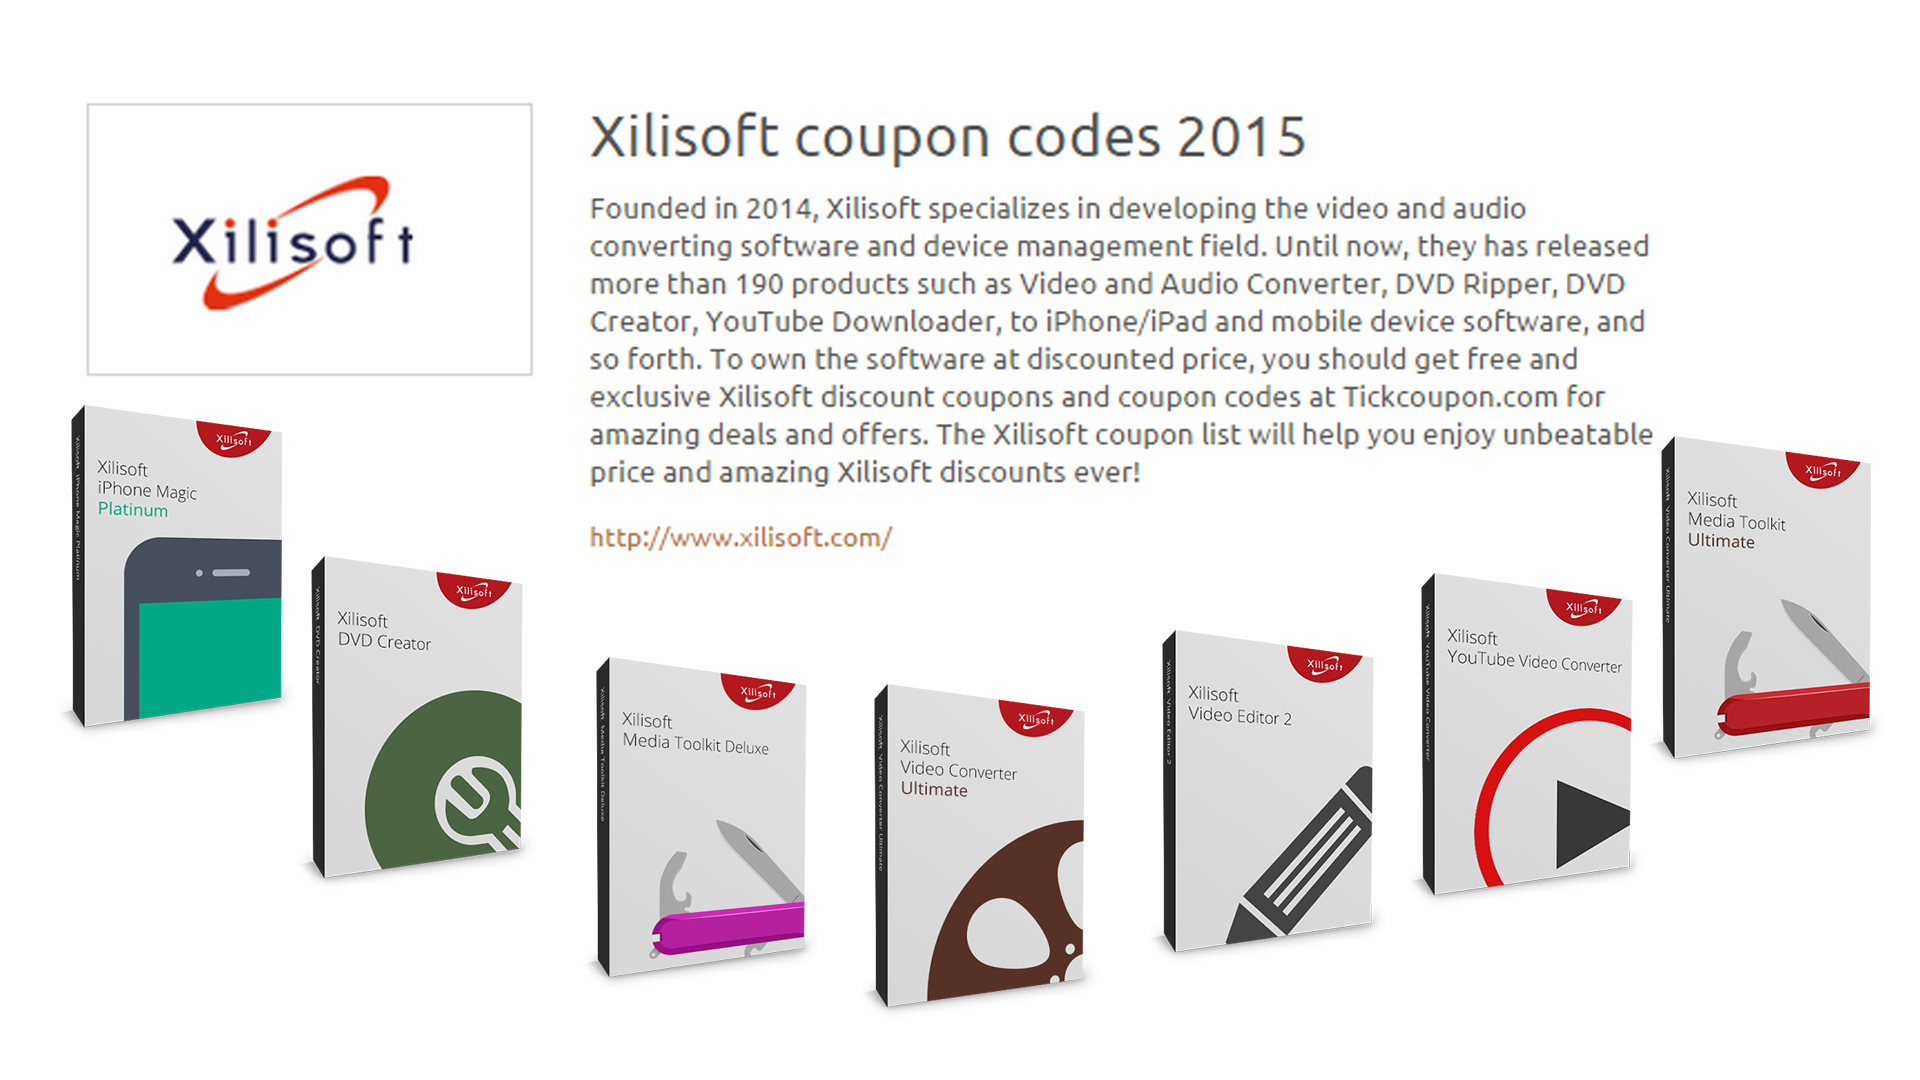 Xilisoft Corporation Founded In 2004 Has Released More Than 190 Excellent  Products Ranging From Video And